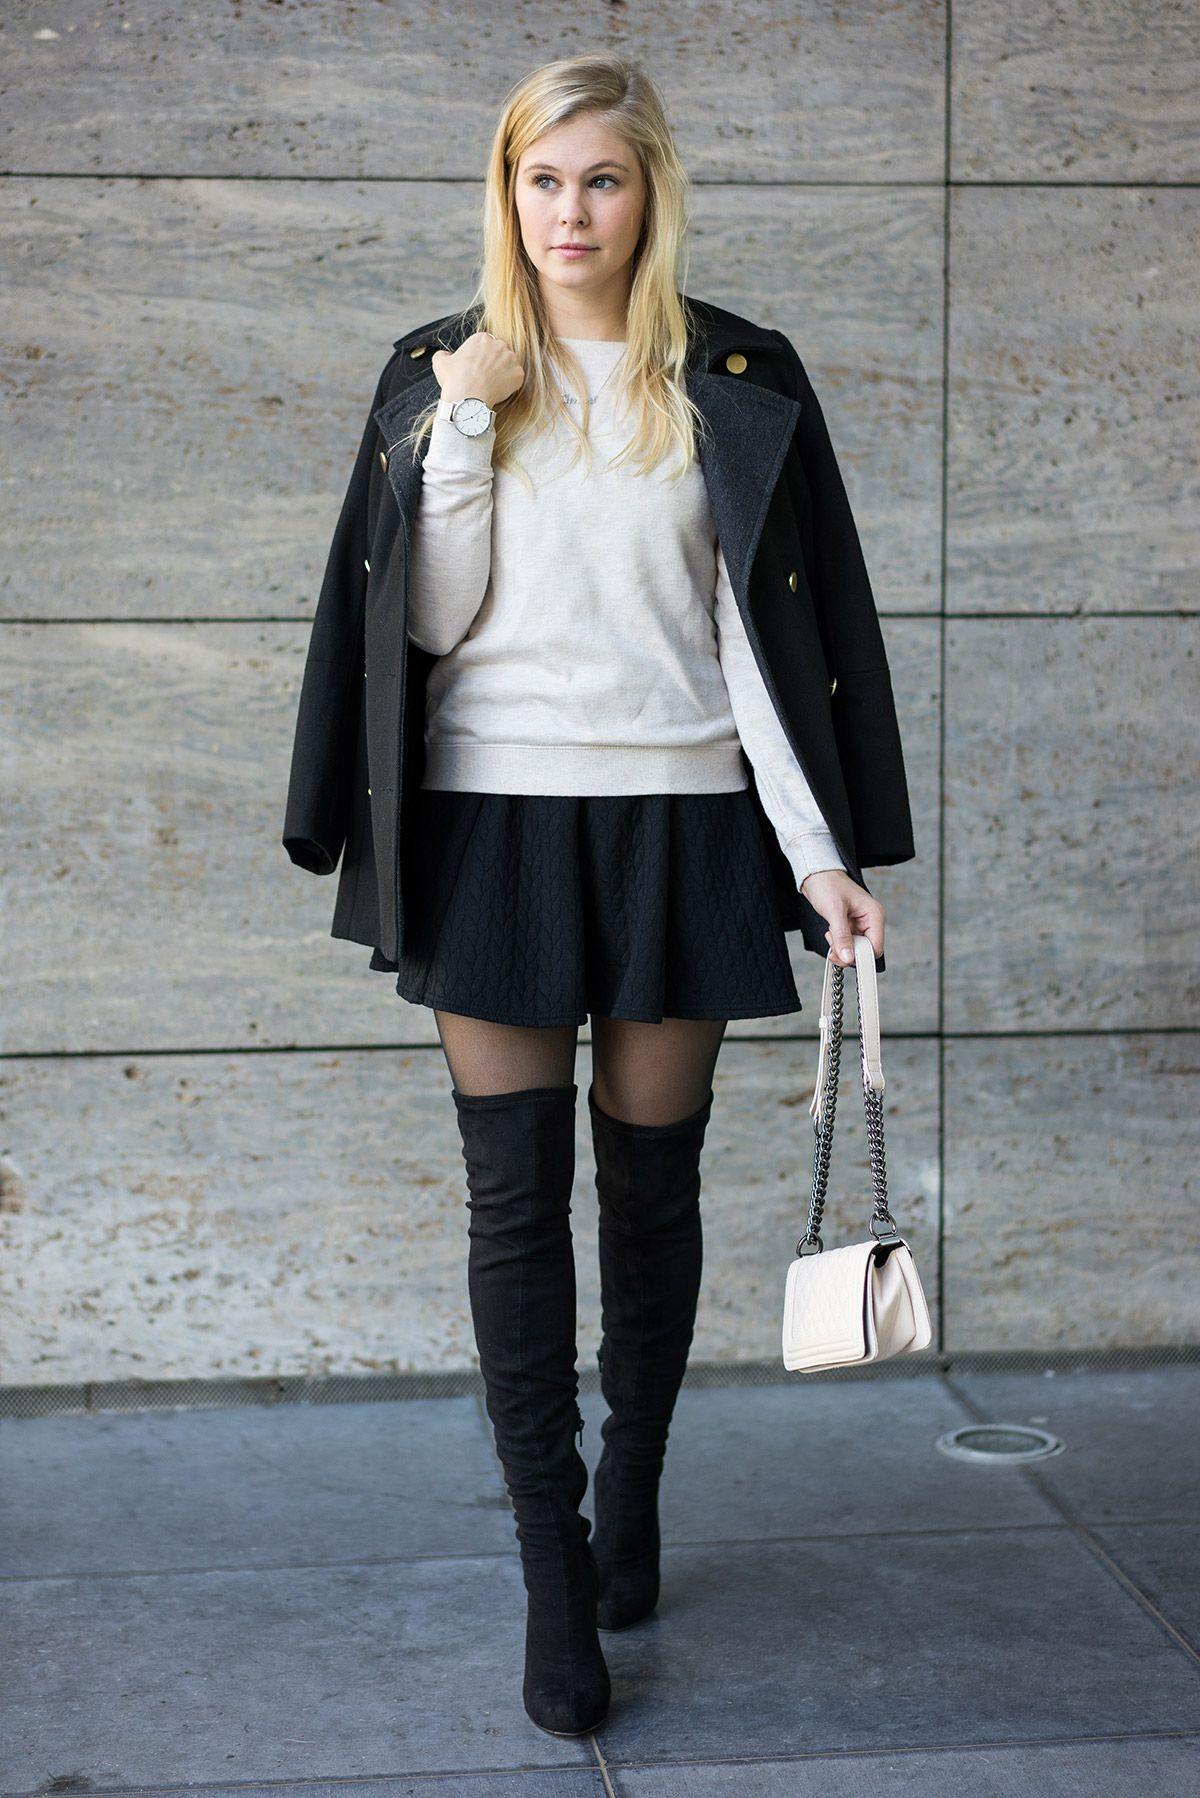 Schwarze Overknees - Das perfekte Outfit by Sunnyinga ...